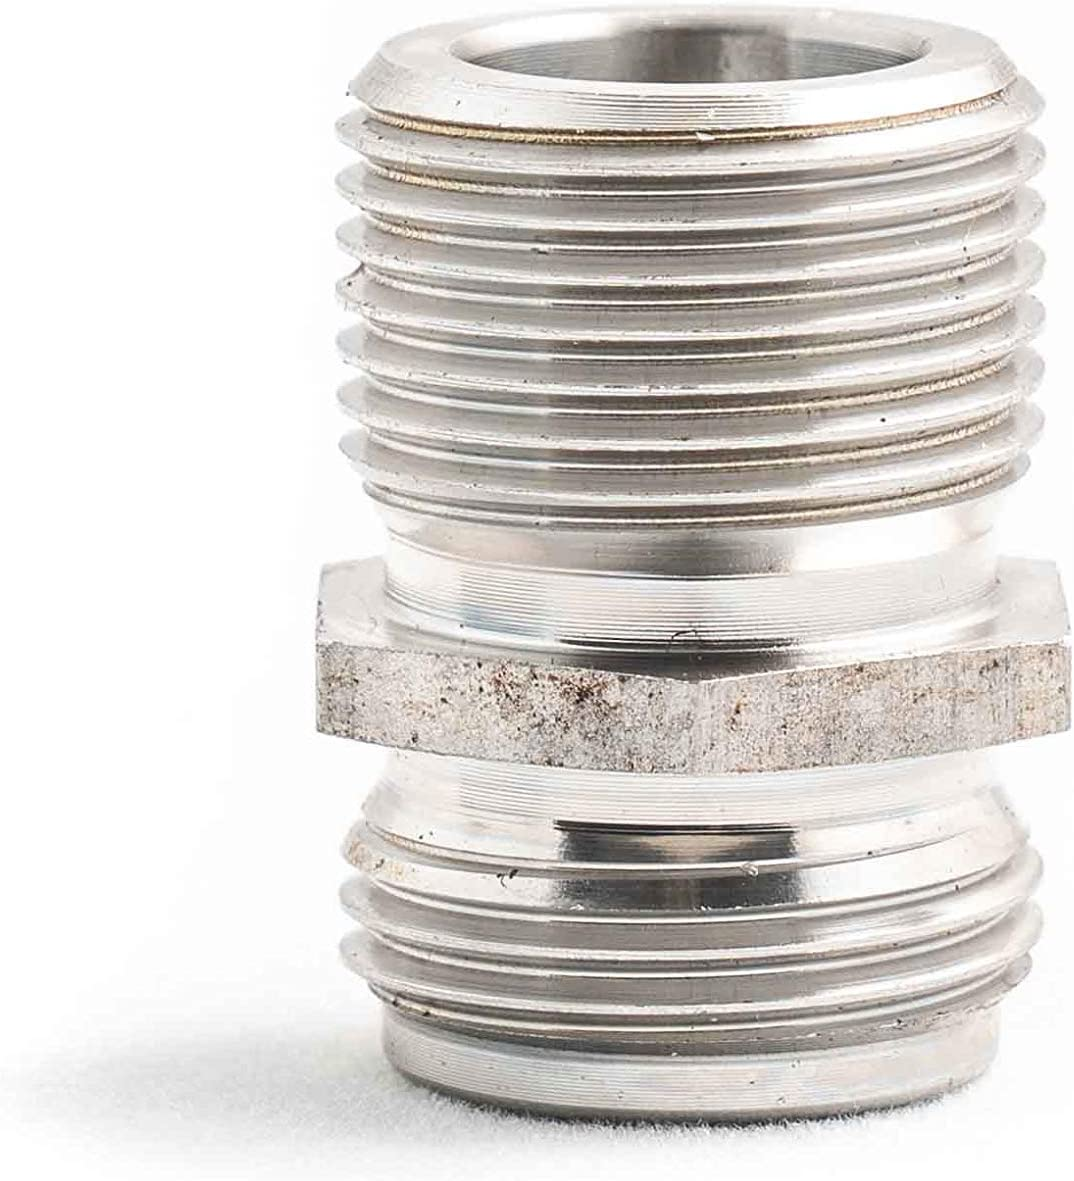 Stainless Steel 68RFE Spin On Transmission Filter Screw Coupler Upgrade Compatible with 2007.5-2019 Dodge Ram 6.7L Cummins Diesel